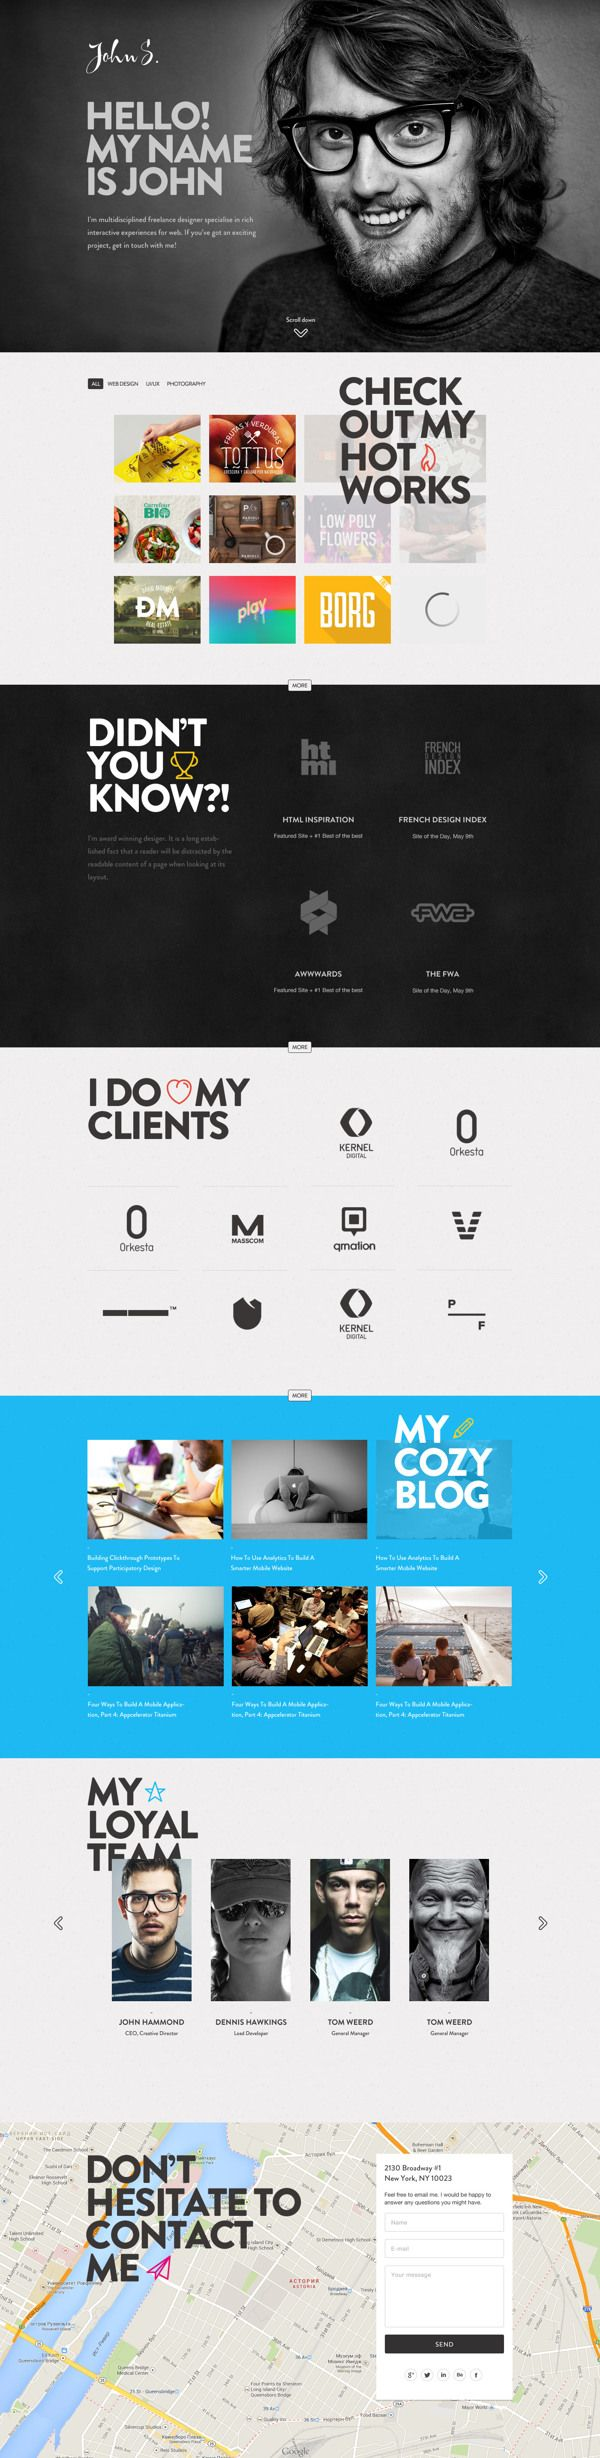 Responsive One Page Portfolio Joomla Template By Robert Gavick Via Behance